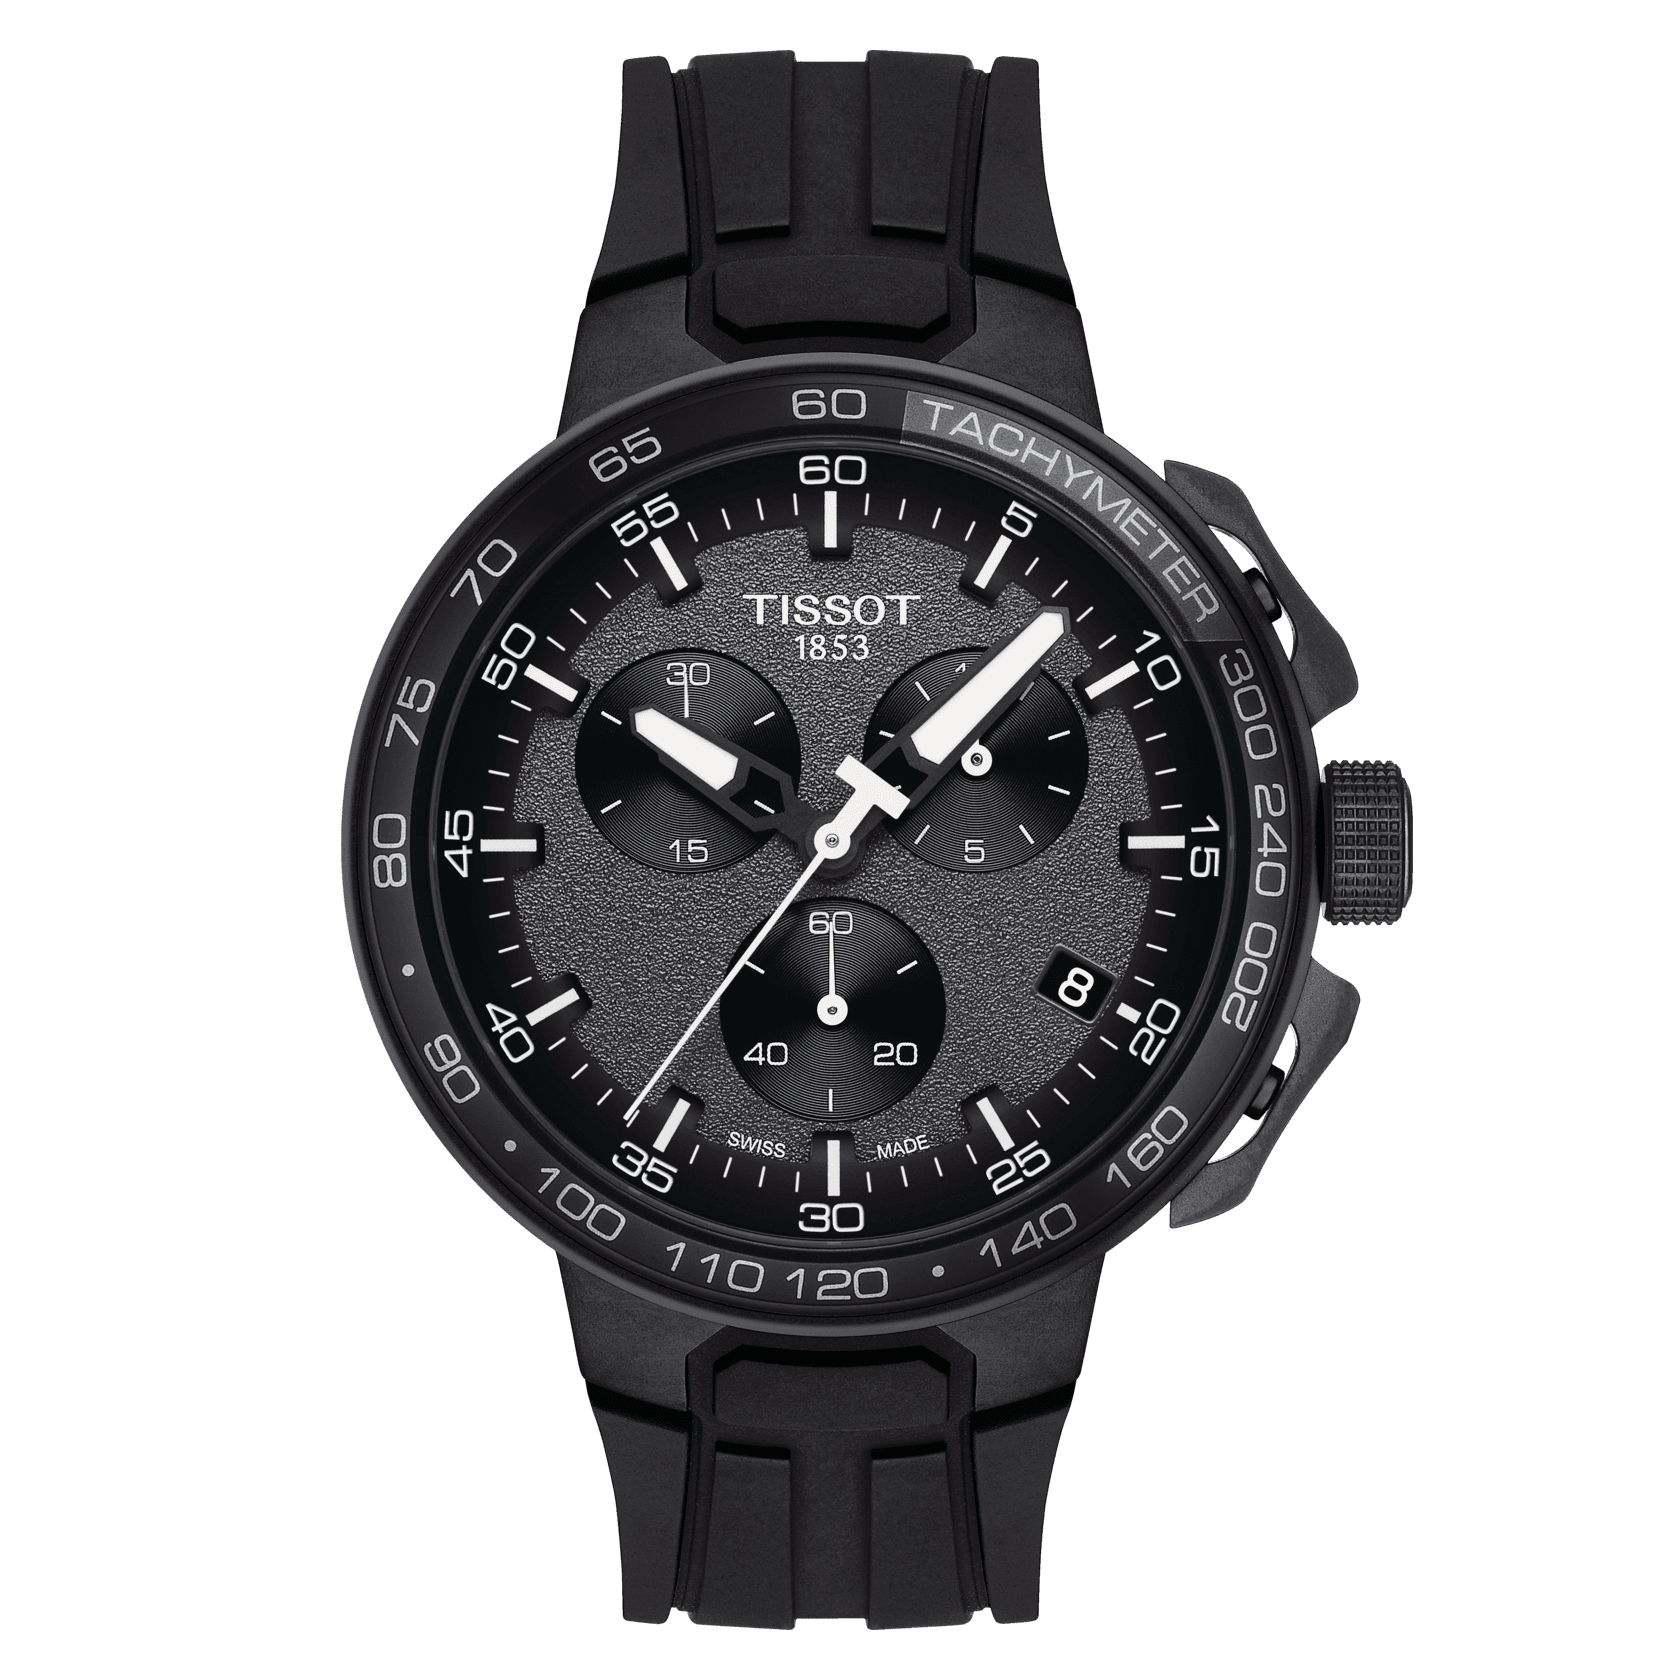 Tissot Chronograph T-Race Cycling